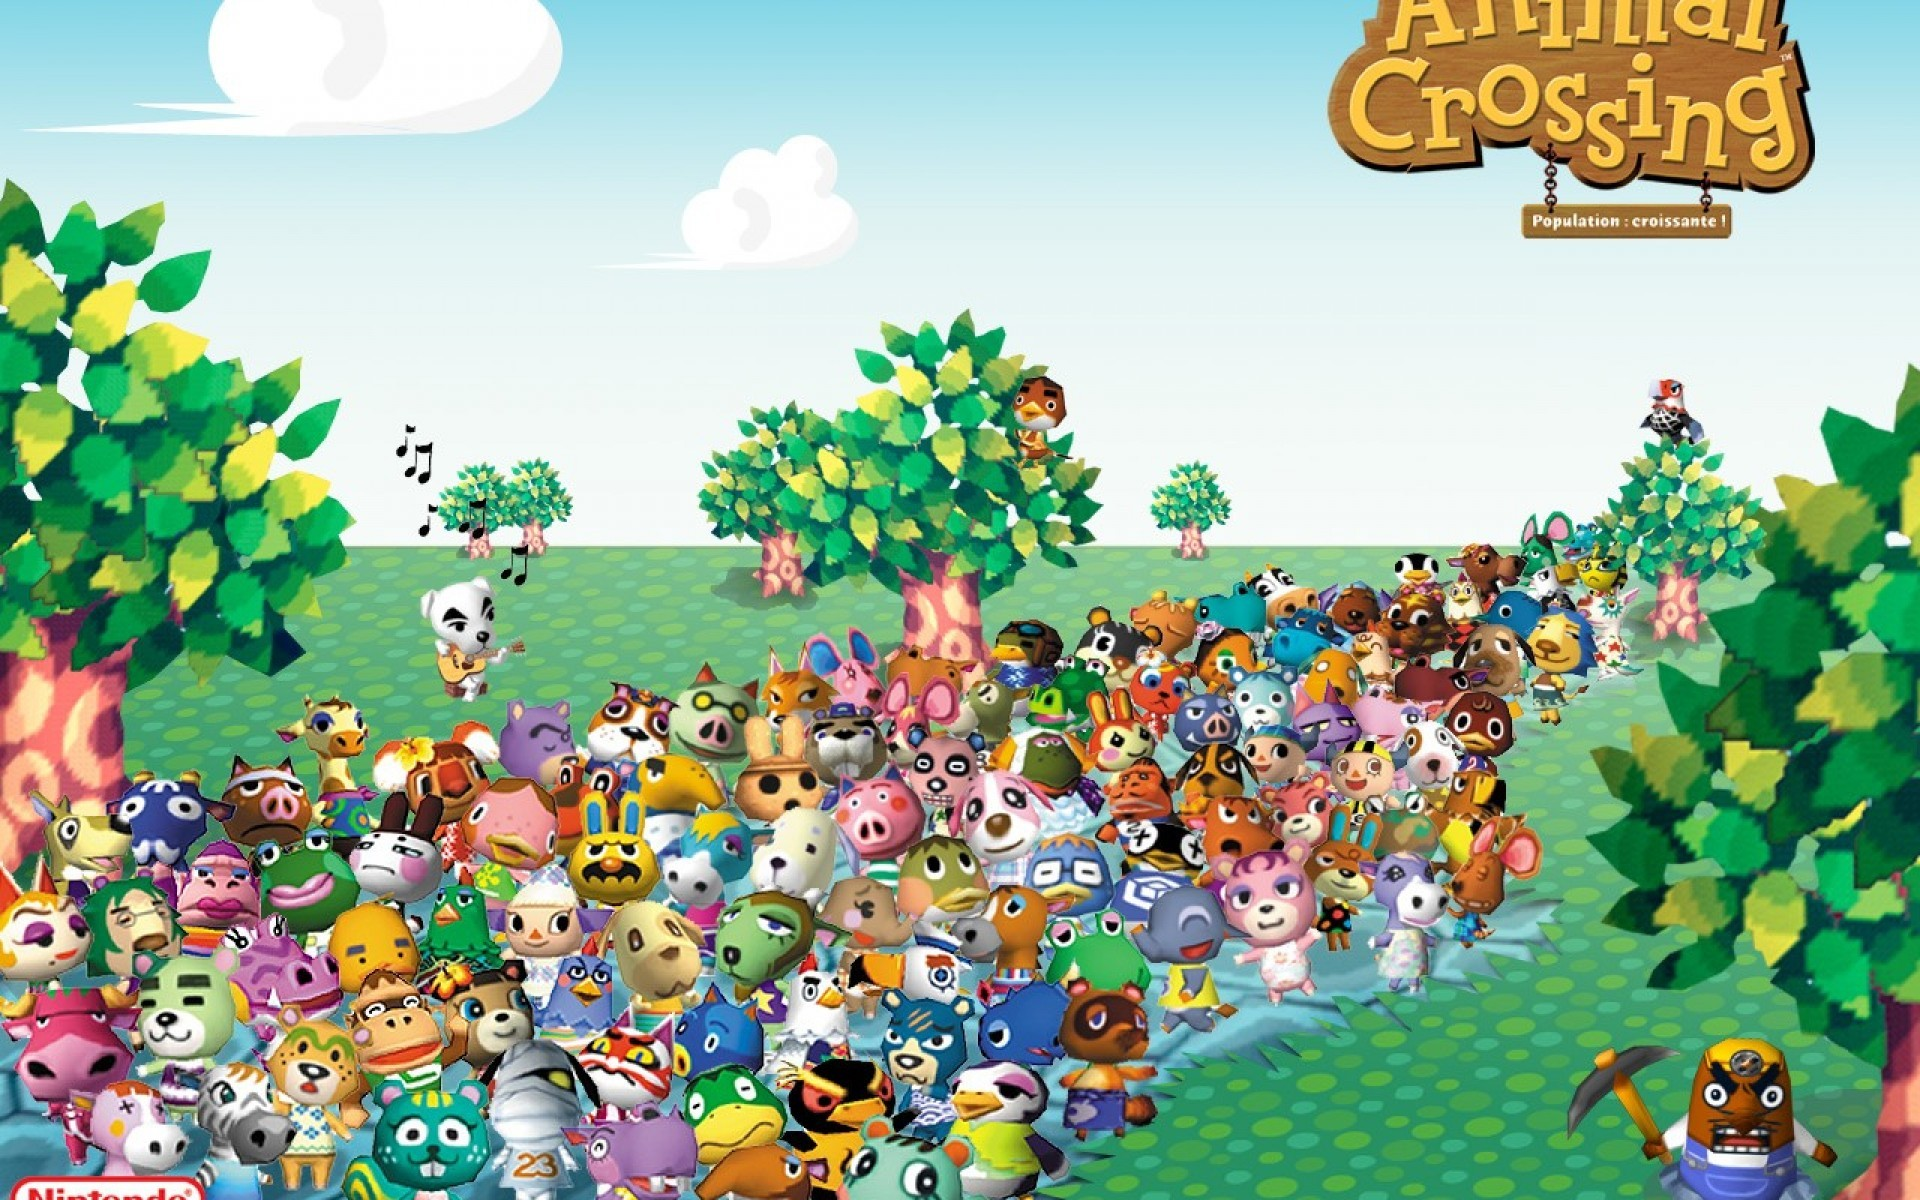 Animal Crossing Desktop Wallpaper City Folk 1920x1200 Wallpaper